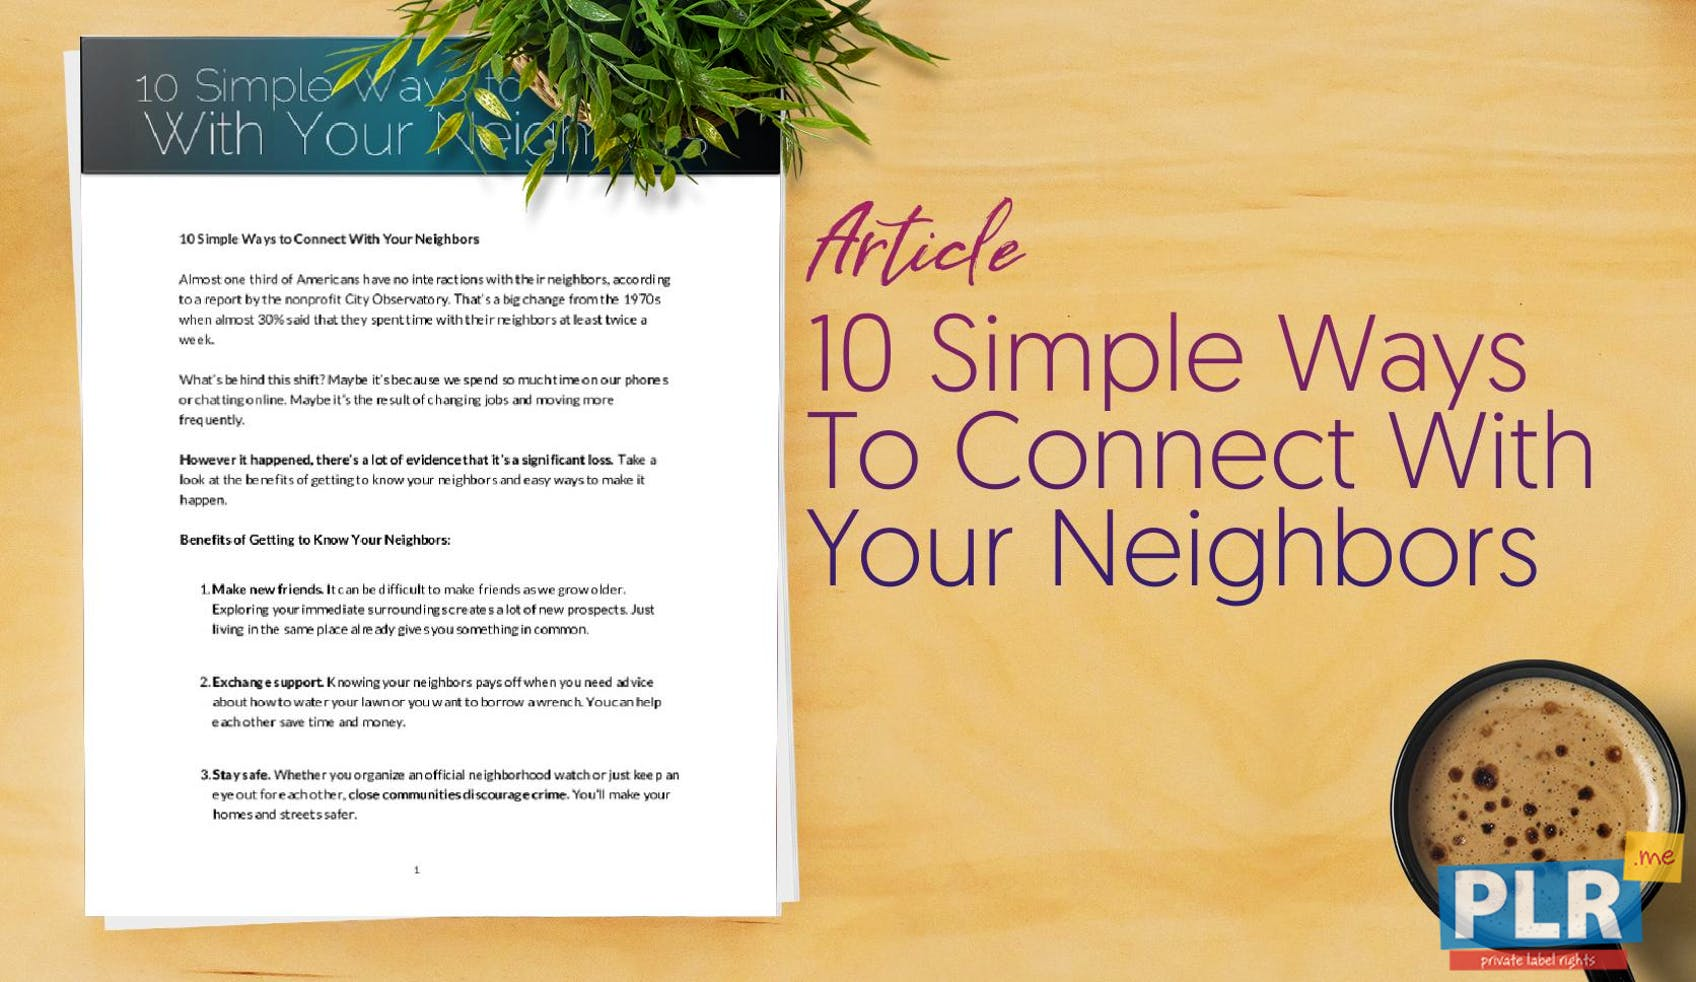 10 Simple Ways To Connect With Your Neighbors